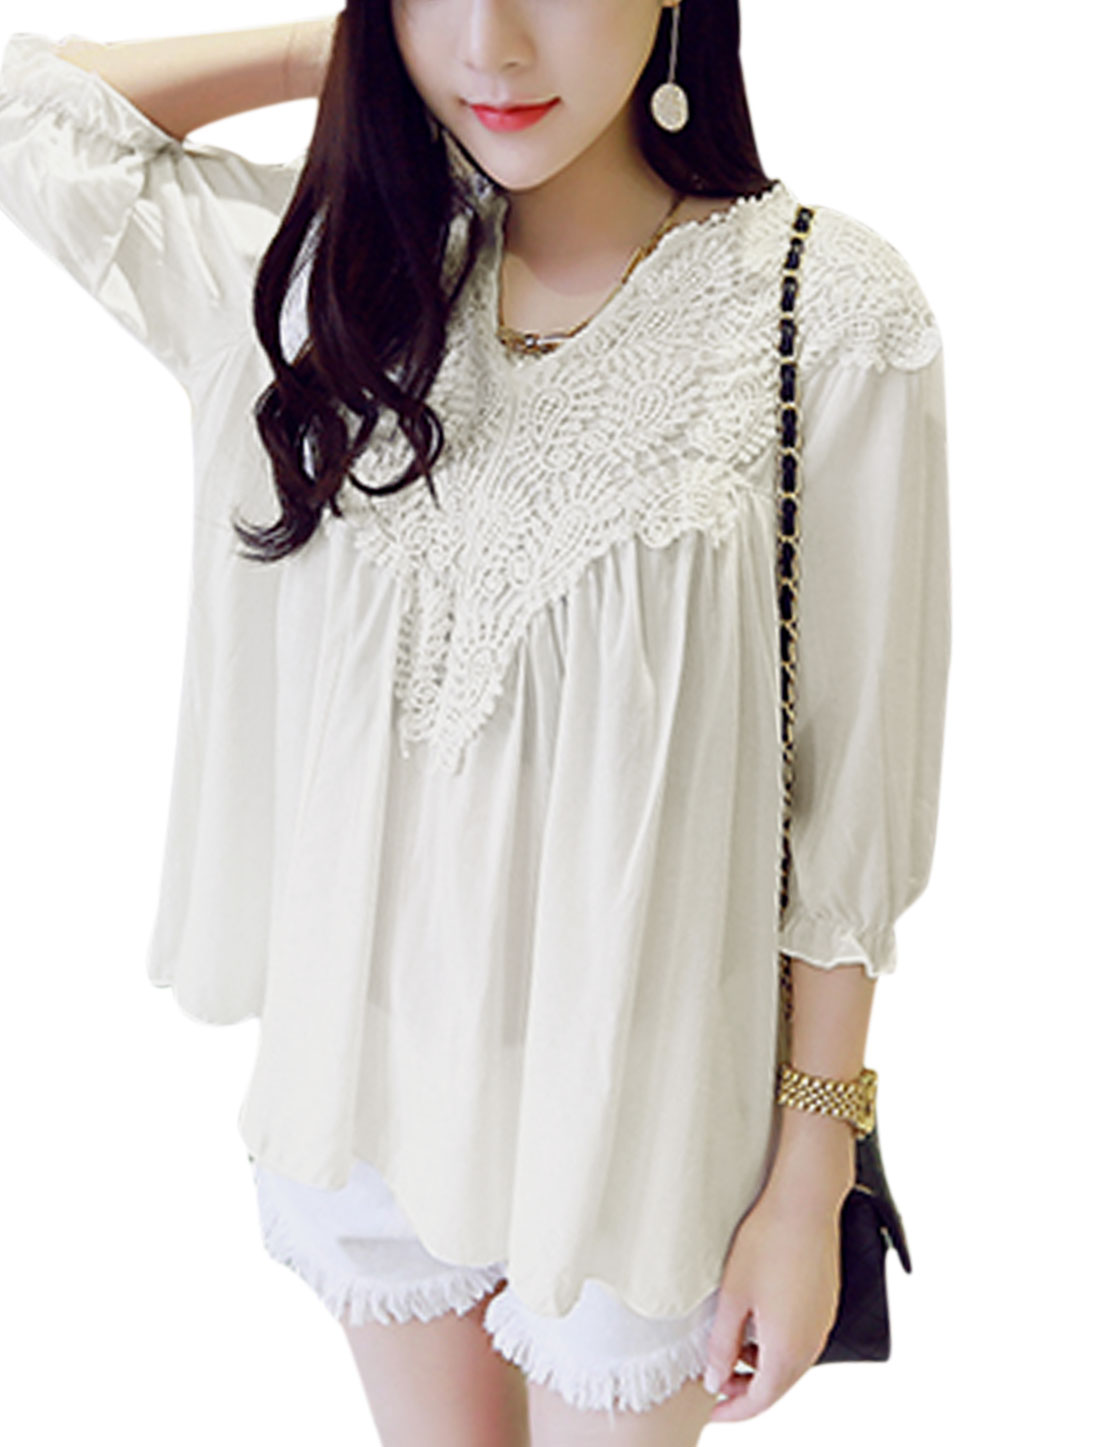 Woman Crochet Design Split Neck 3/4 Sleeves Elastic Cuffs Tunic Top White XS